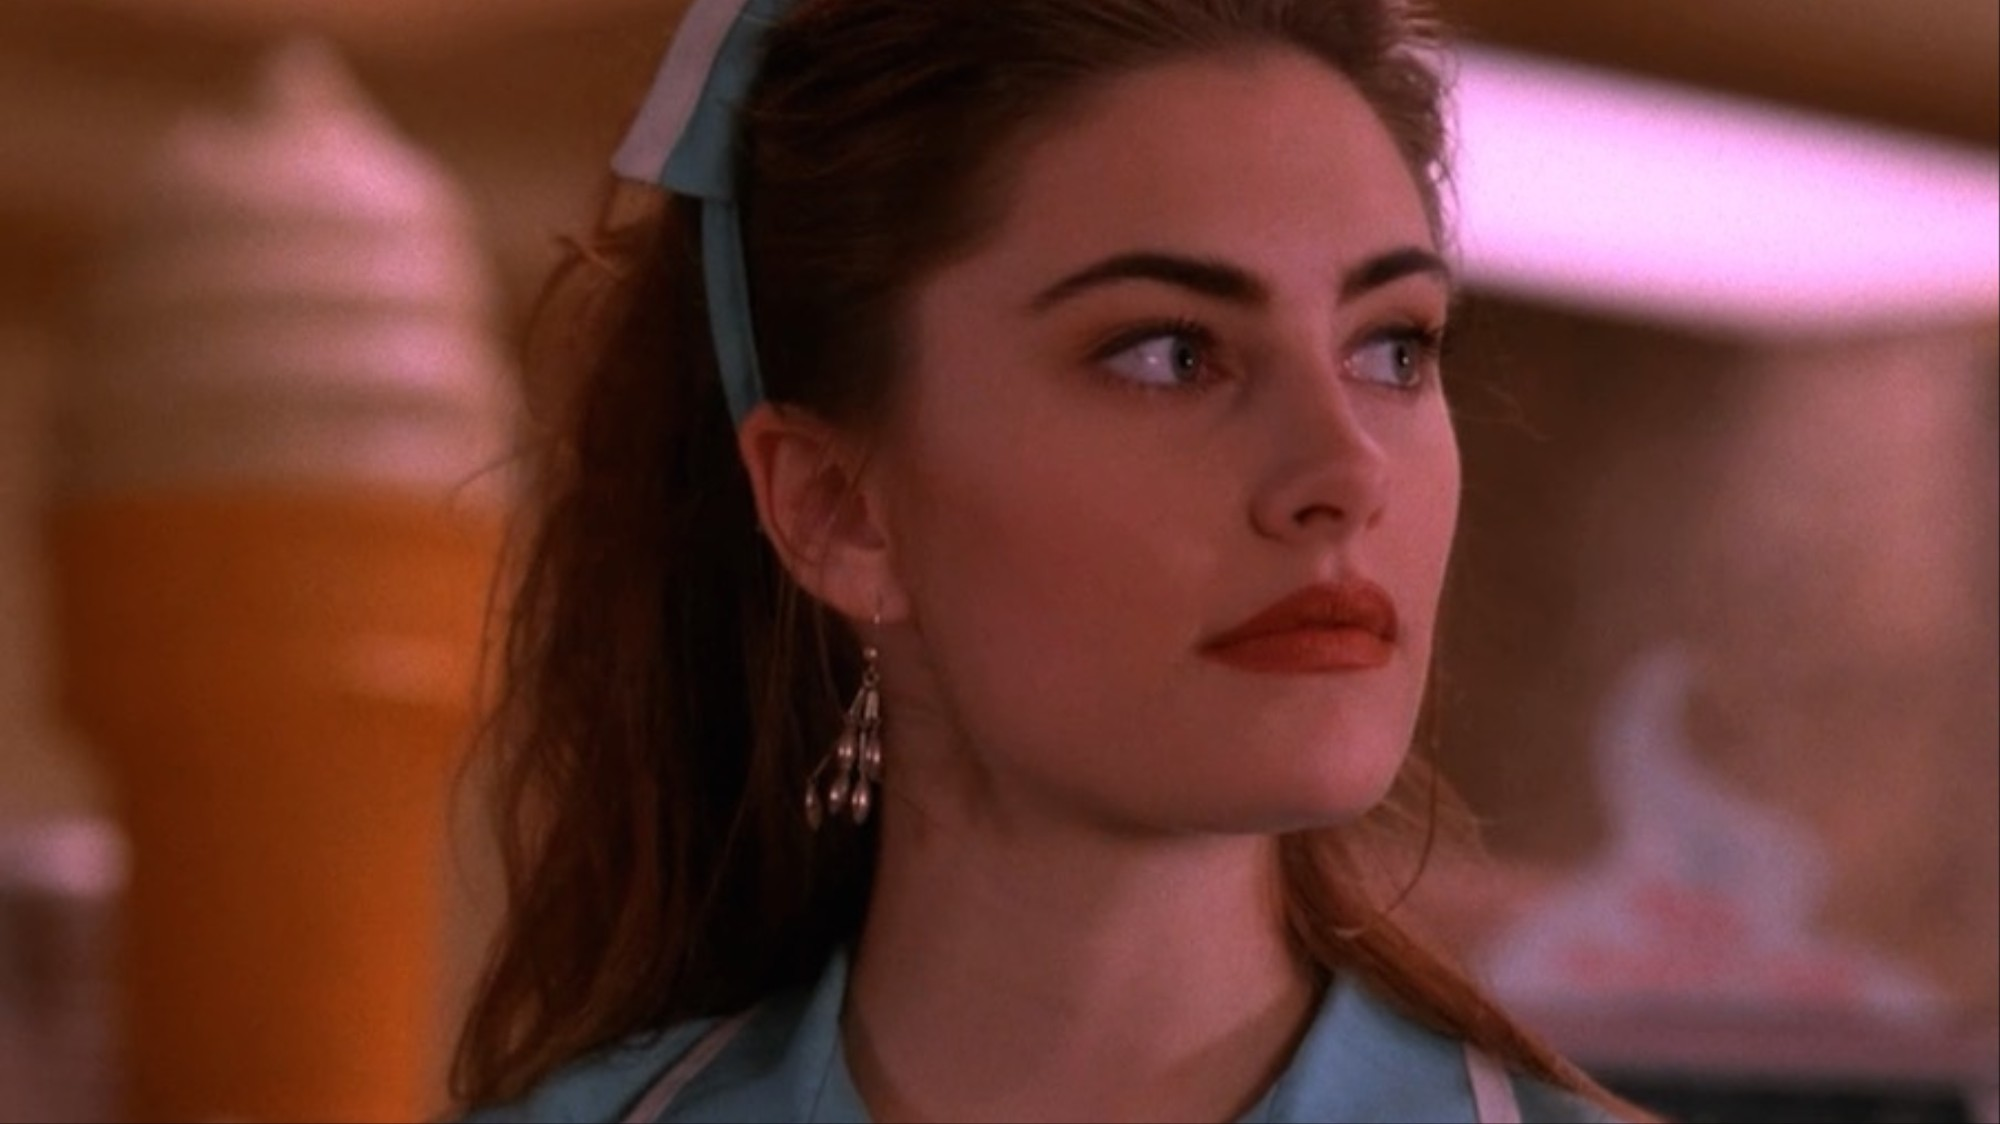 twin peaks star mdchen amick on graduating from the school of david lynch 1495128375 - This Day in Horror: Happy Birthday Madchen Amick